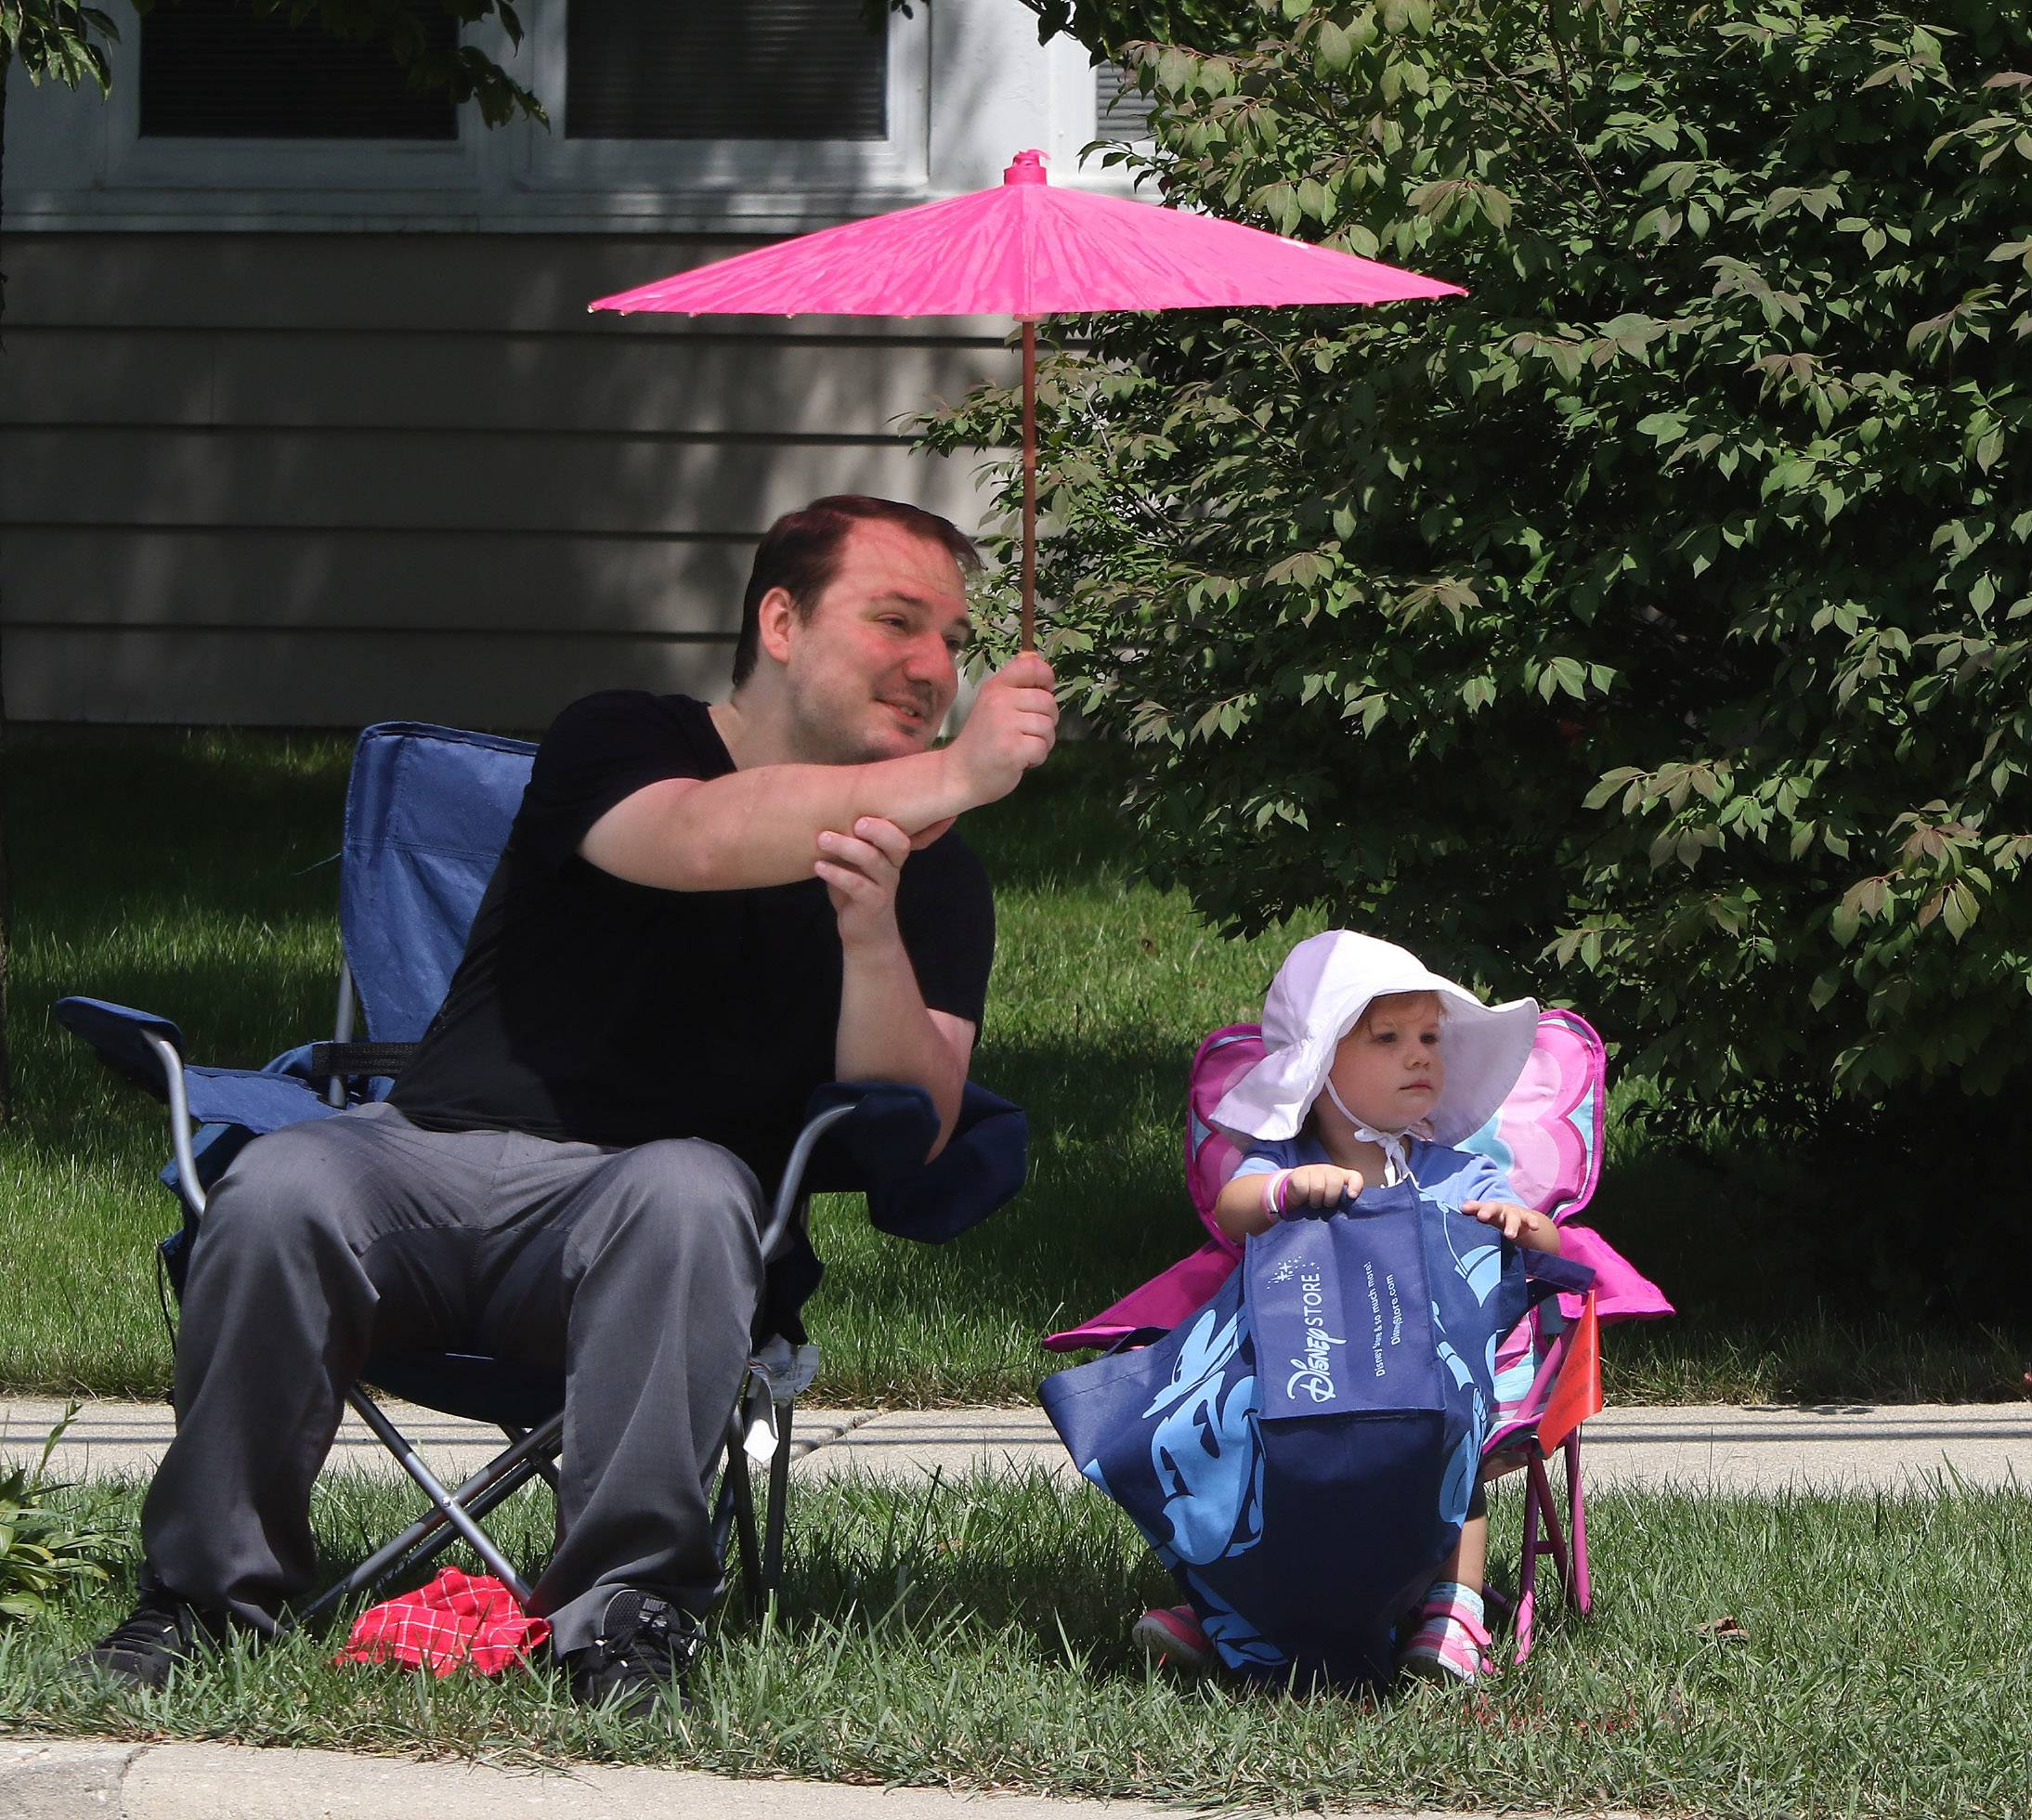 Joseph Hessel, of Gurnee holds a parasol over his daughter, Madelyn, 2, as they watch the parade travel along Old Grand Avenue during the 2017 Gurnee Days Parade on Sunday.